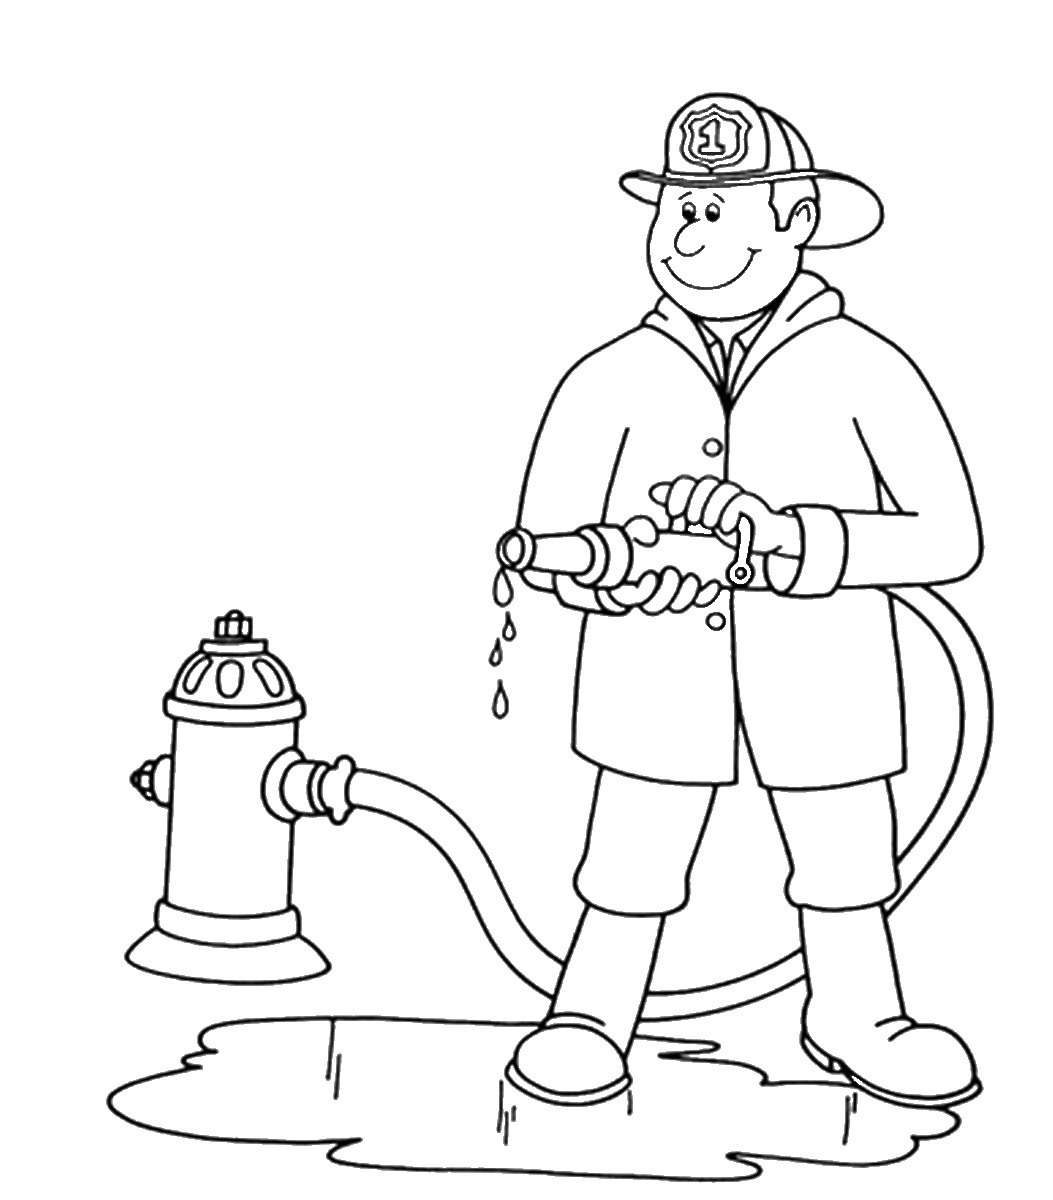 firefighter coloring page free printable fireman coloring pages cool2bkids firefighter coloring page